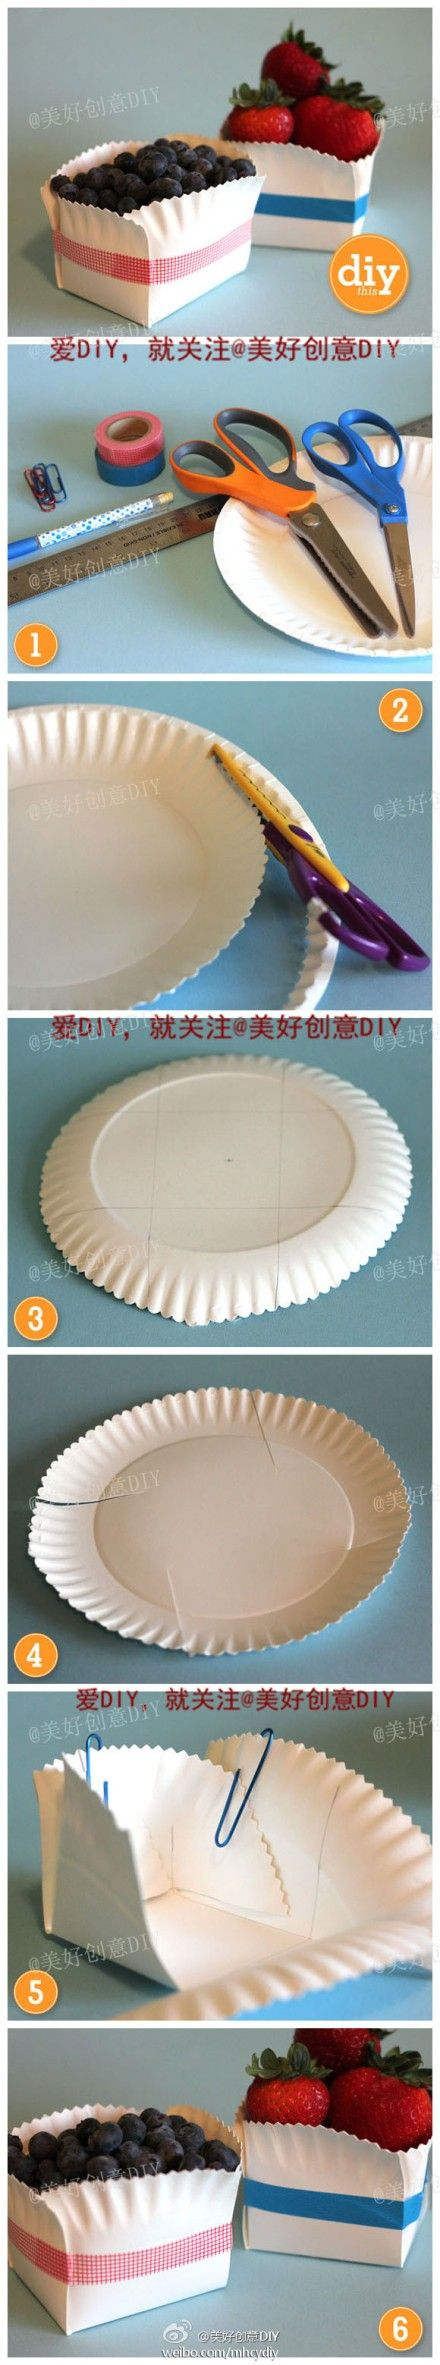 decorated paper plate boxes could be cute for a dessert table or birthday.  #birthdays #partyfavors